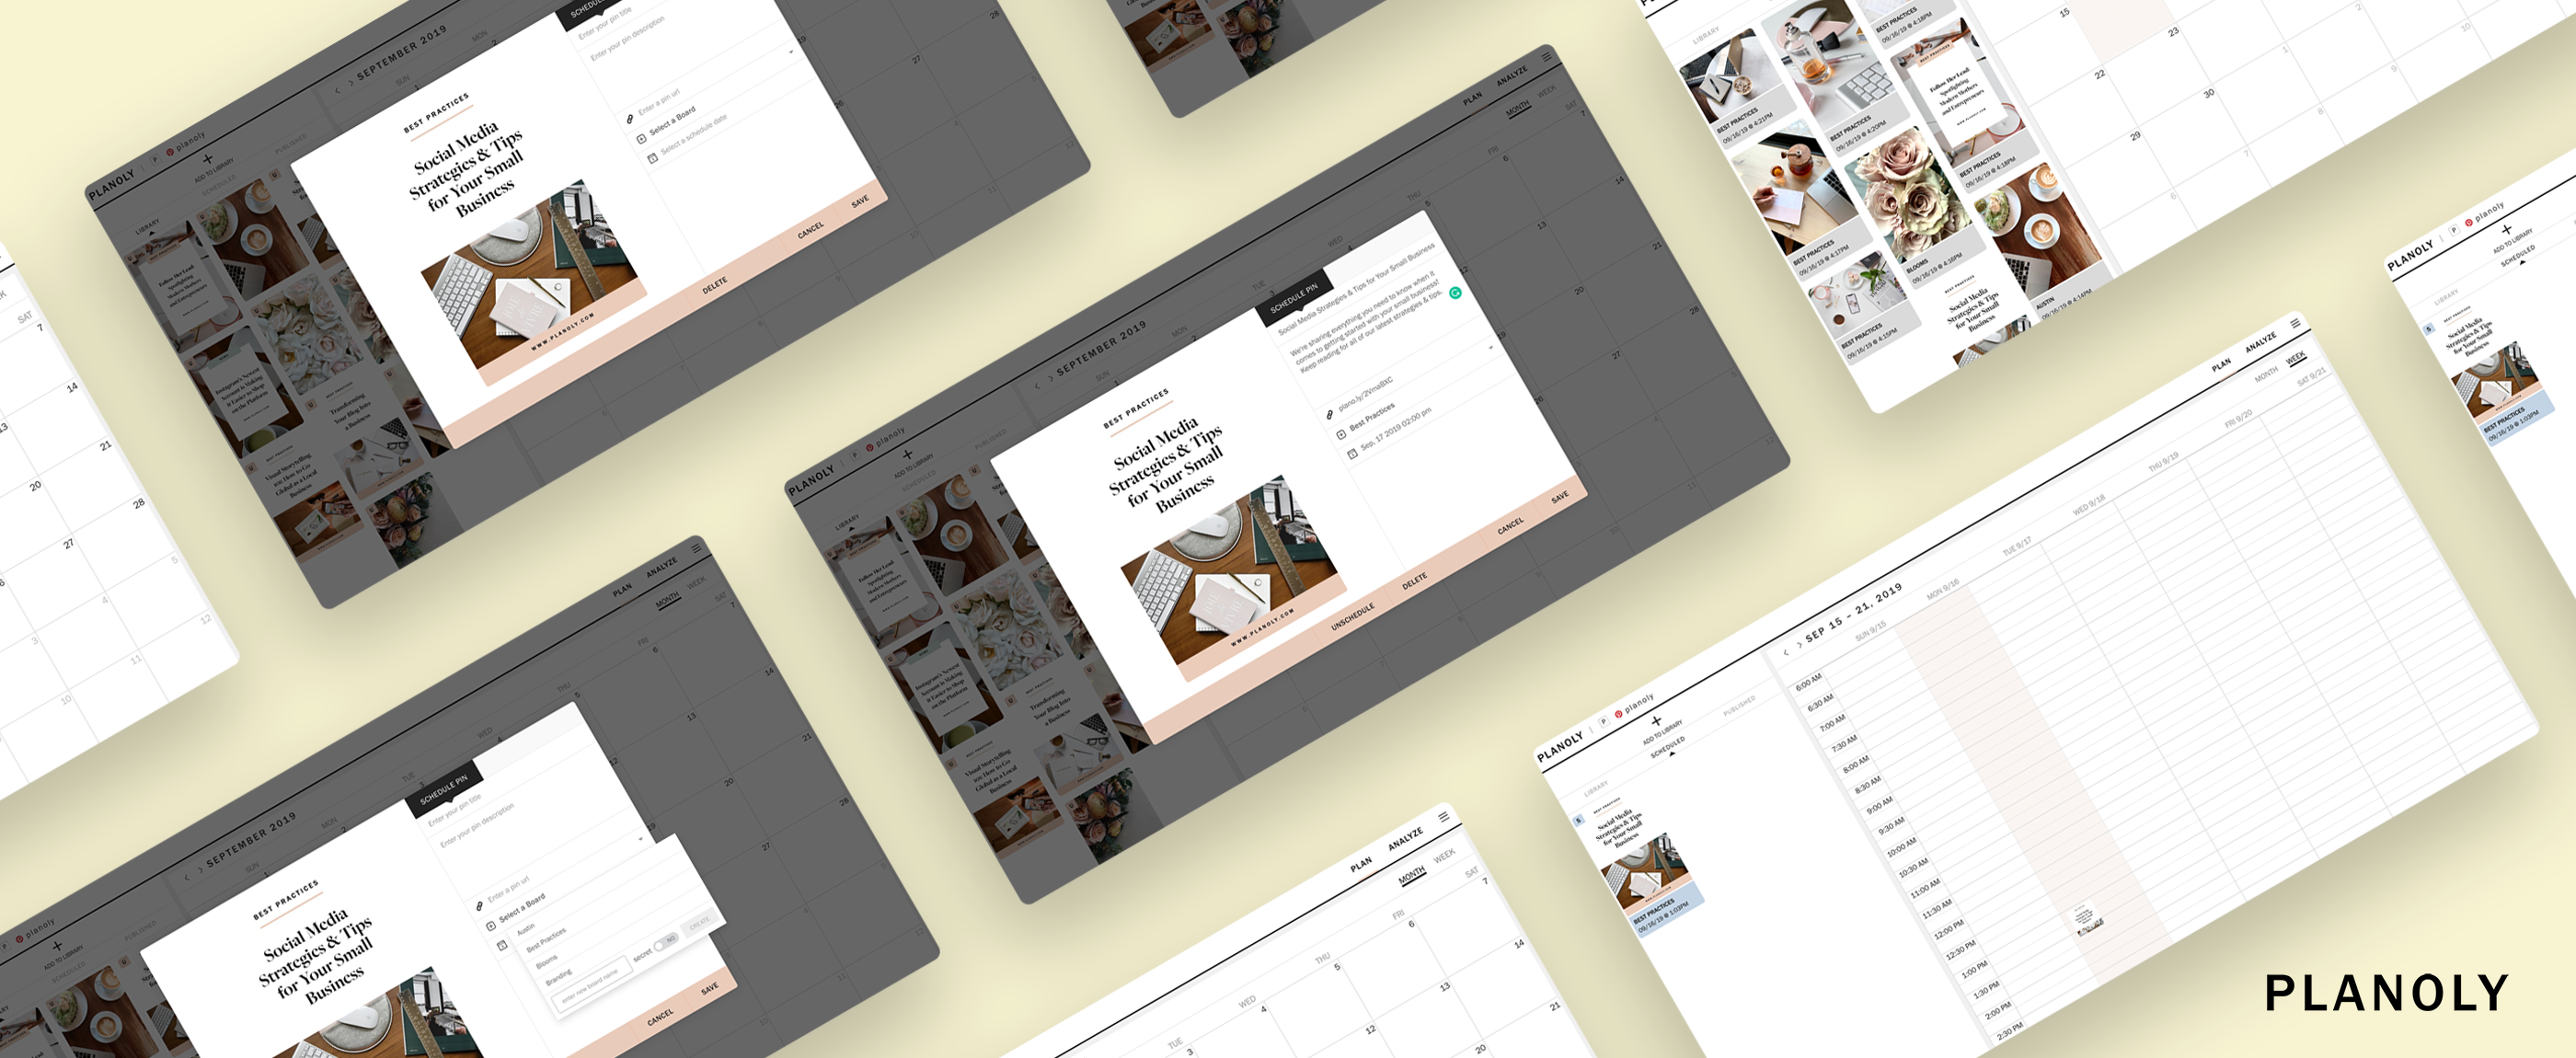 PLANOLY-Blog-Post-New-PLANOLY-Product-Pin-Planner-Banner-2-2